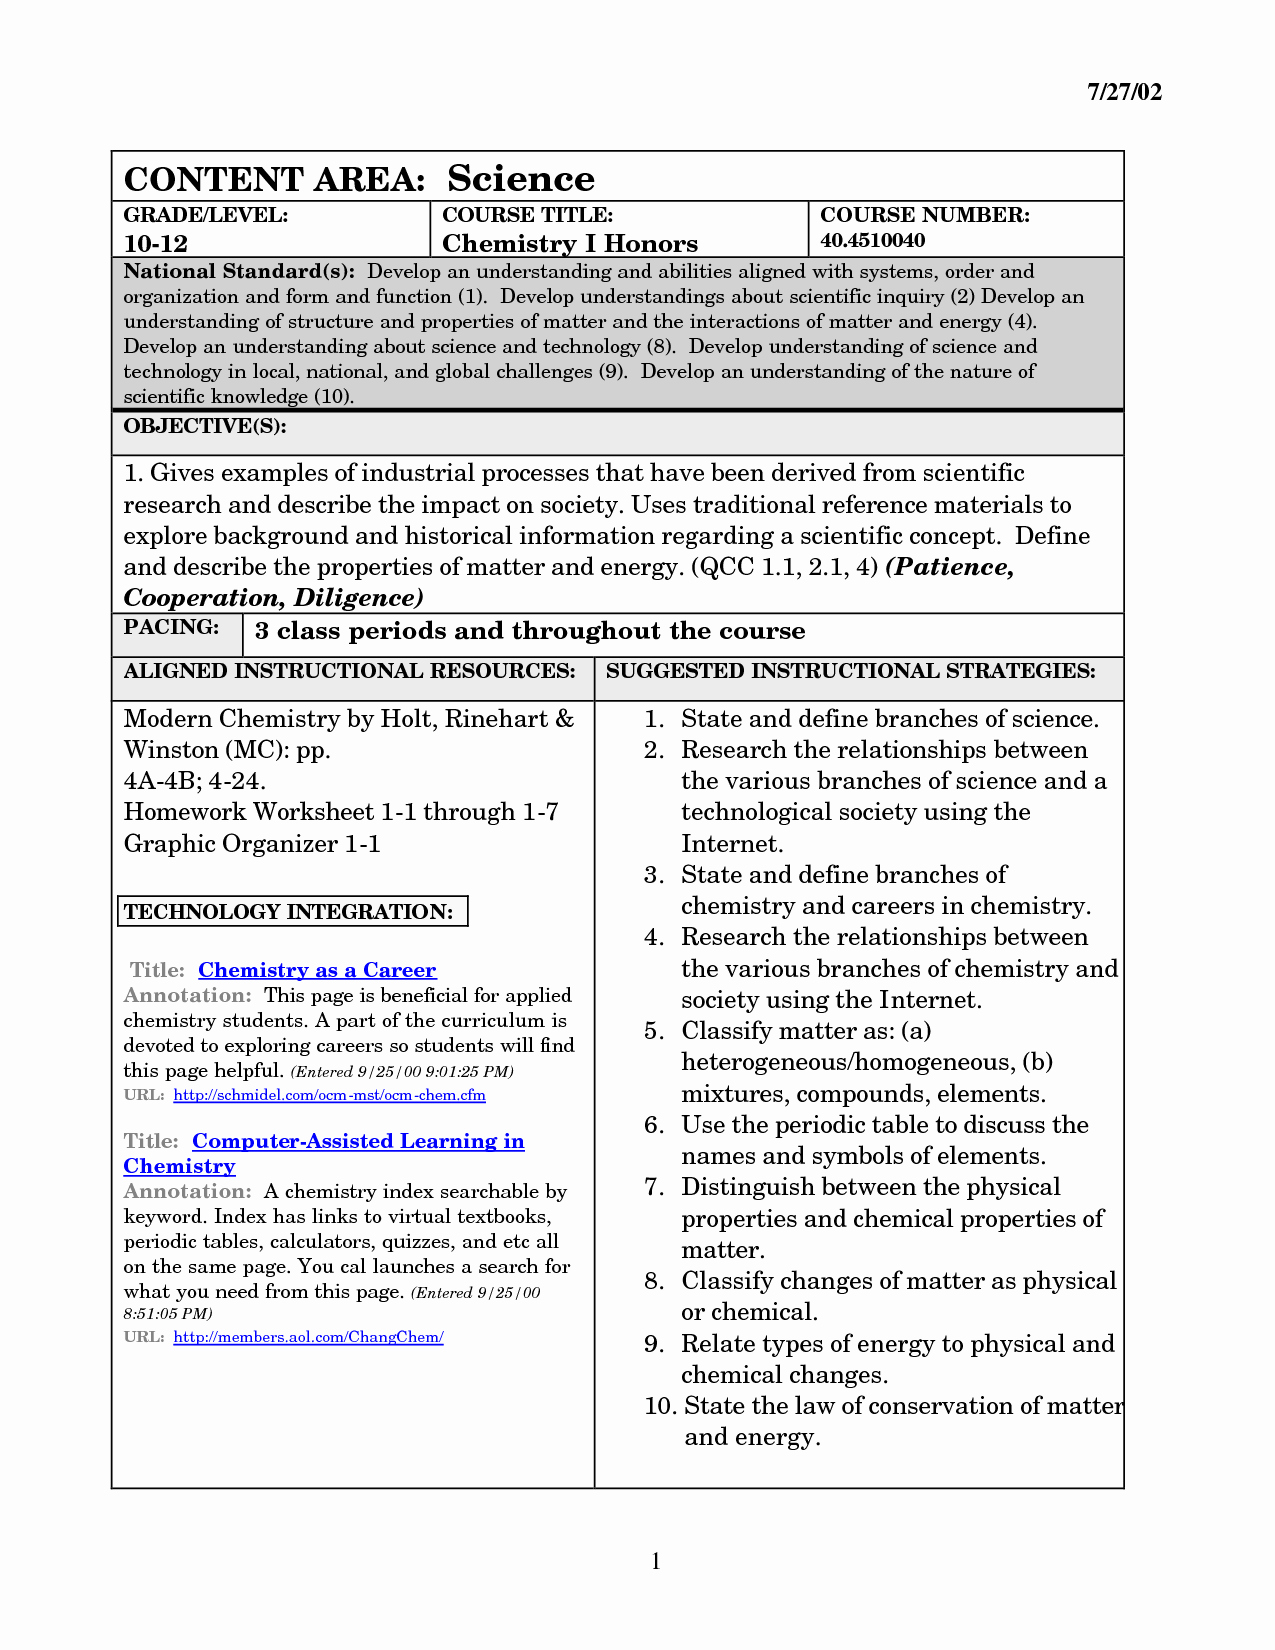 50 Classifying Matter Worksheet Answers